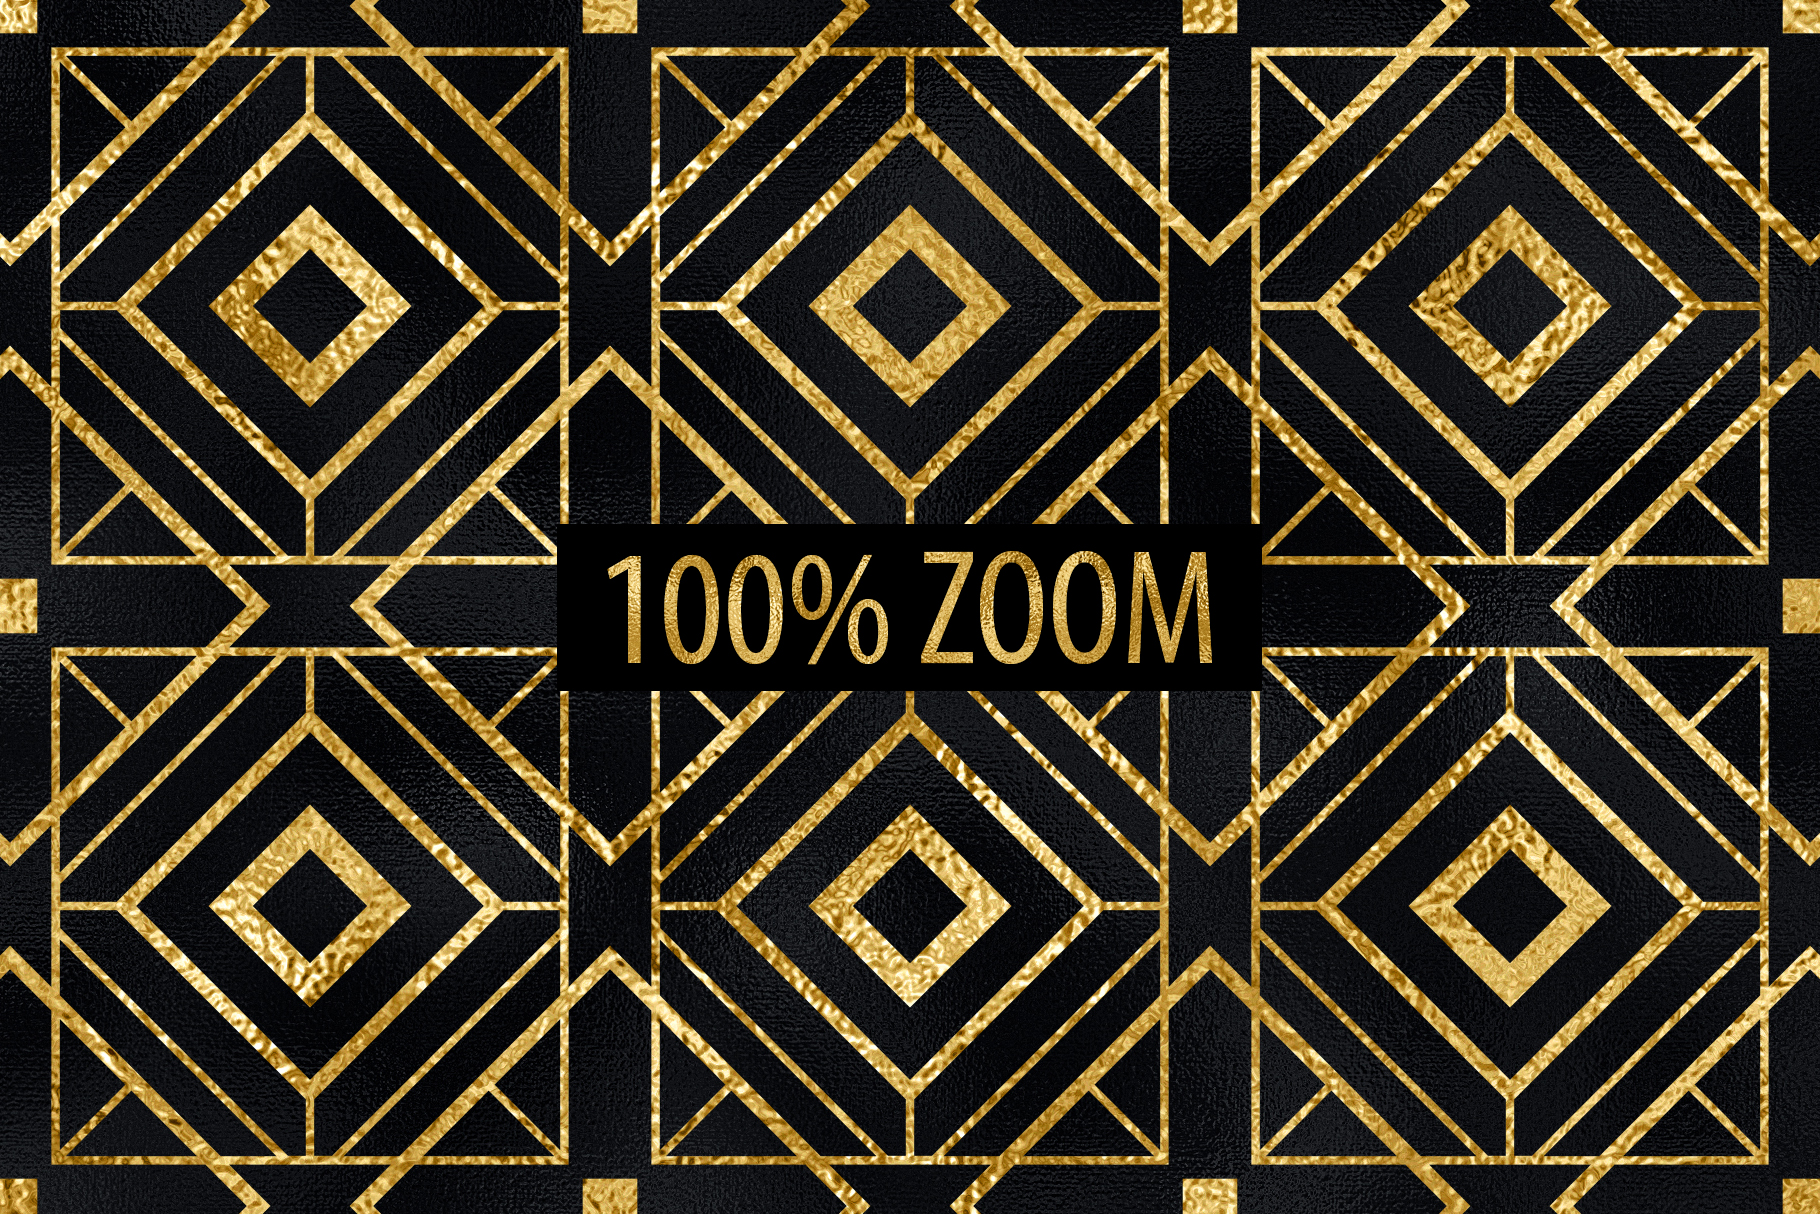 Geometric Art Deco Patterns - 20 Seamless Vector Patterns example image 11